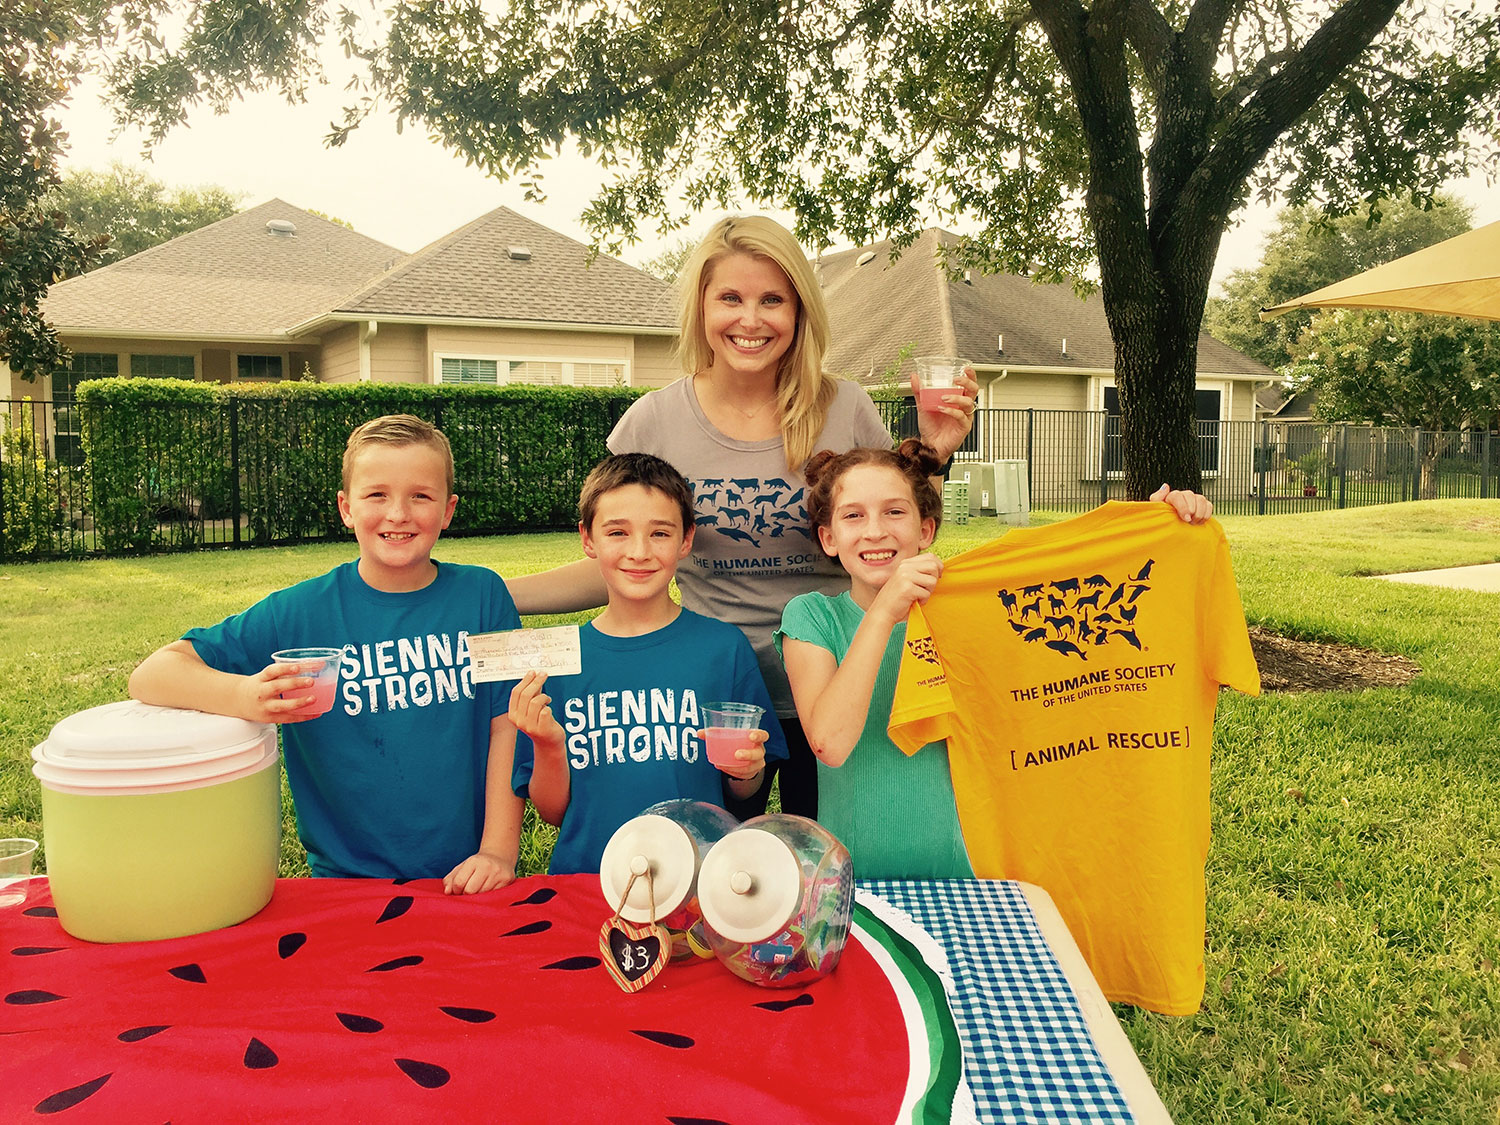 10-Year-Old Devotes Free Time to Raising Thousands for Animal Rescues Through Lemonade Stands